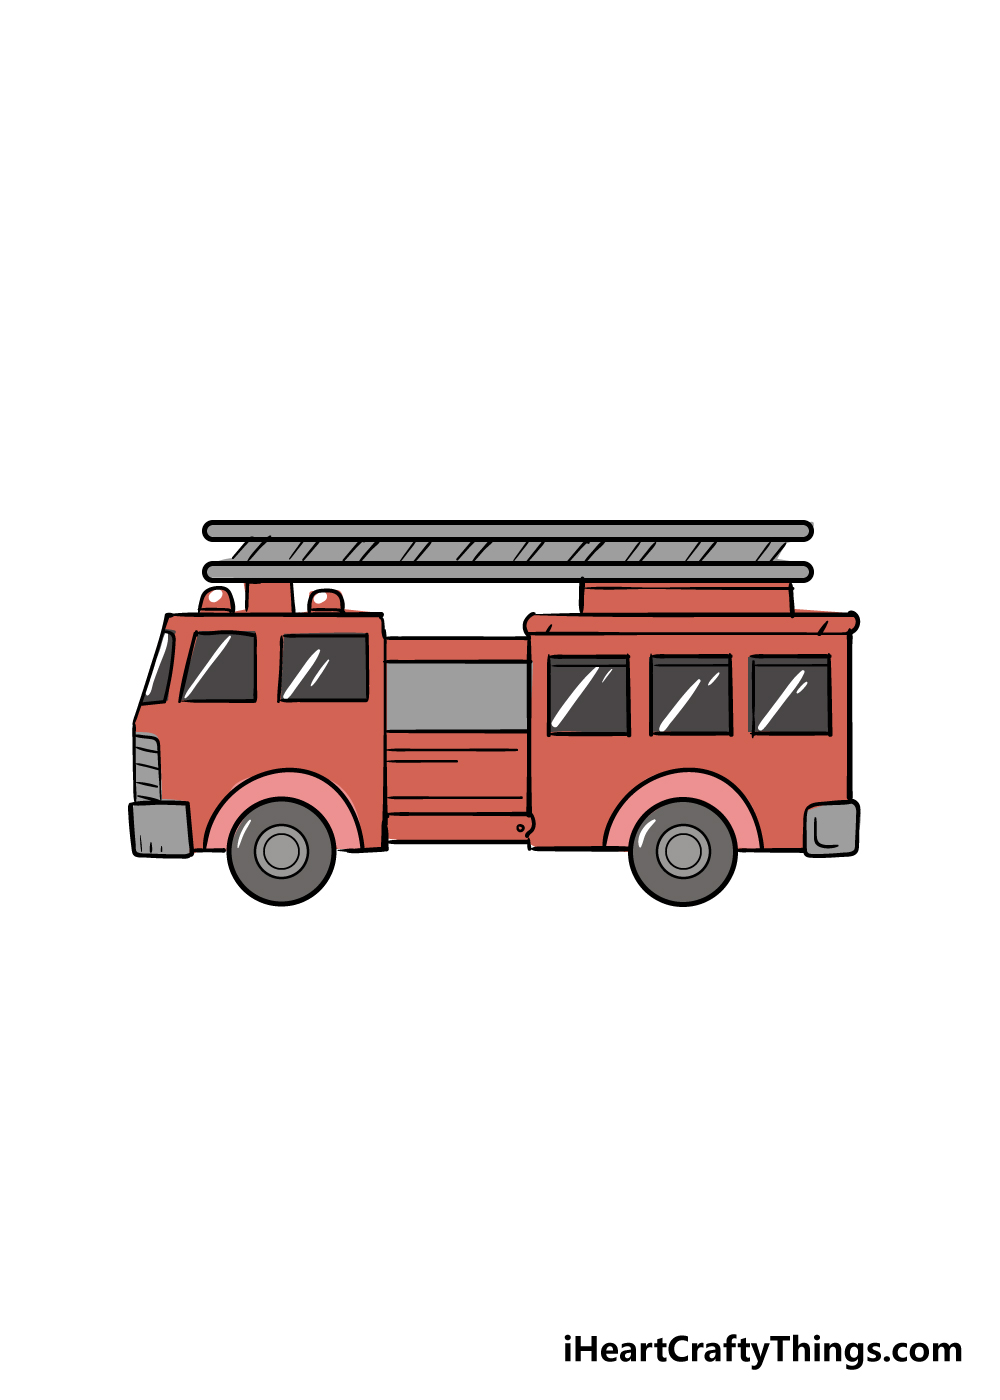 fire truck drawing step 6